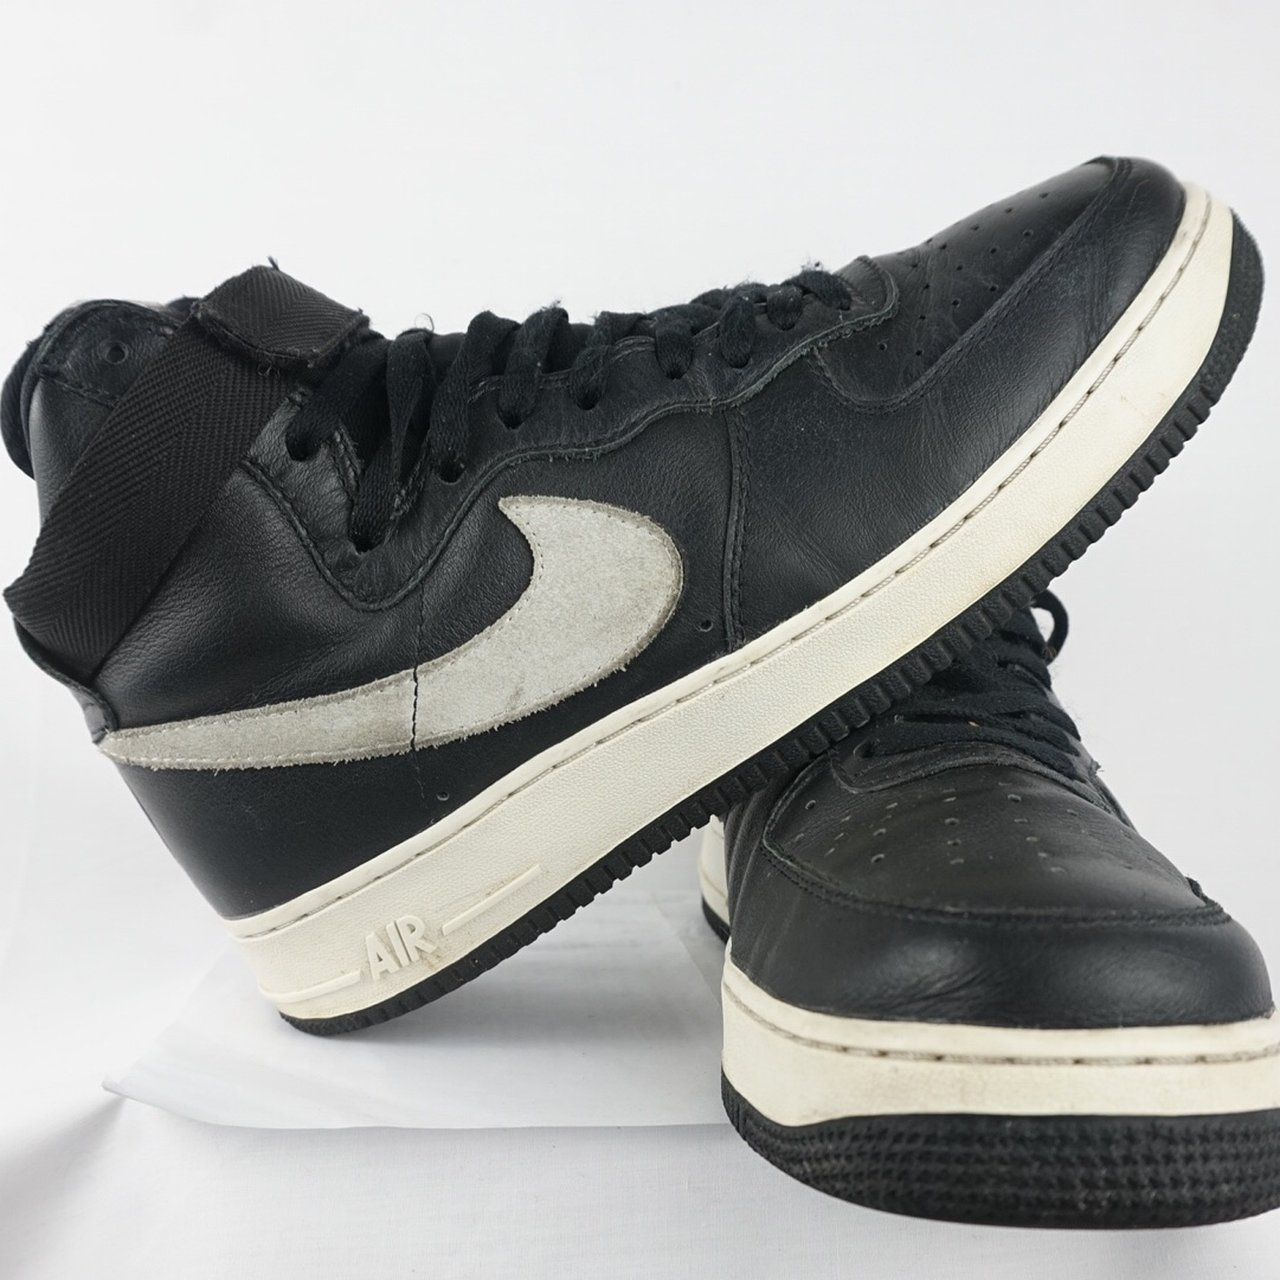 cheap for discount 7849c fbfc6  cjscb. 7 months ago. Tampa, United States. Nike Air Force One High Black  ...